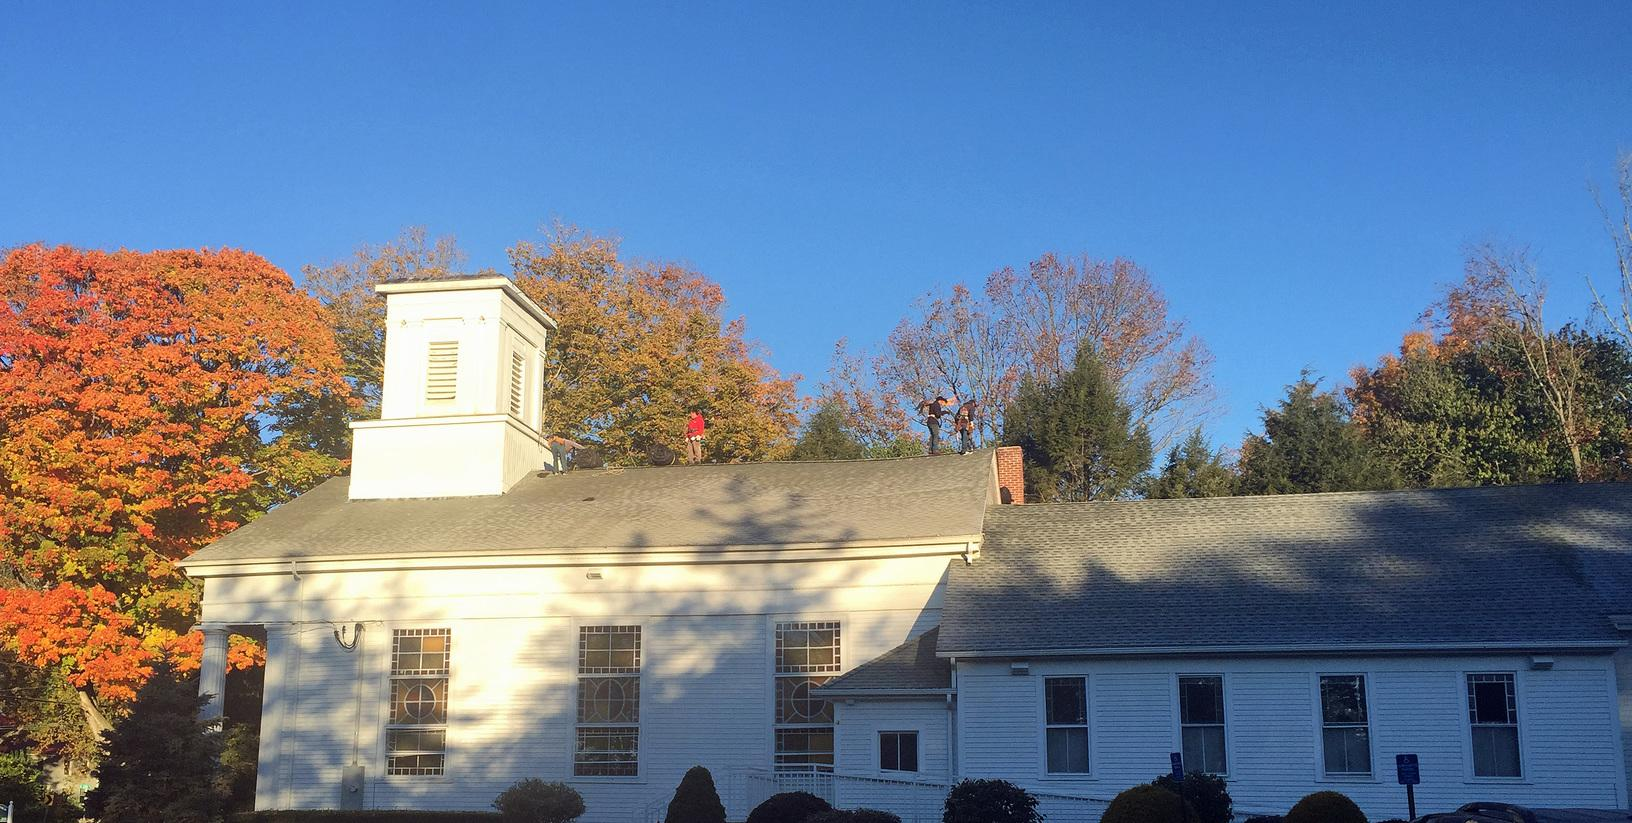 Roofing the Baptist Church of Lebanon, CT - Before Photo